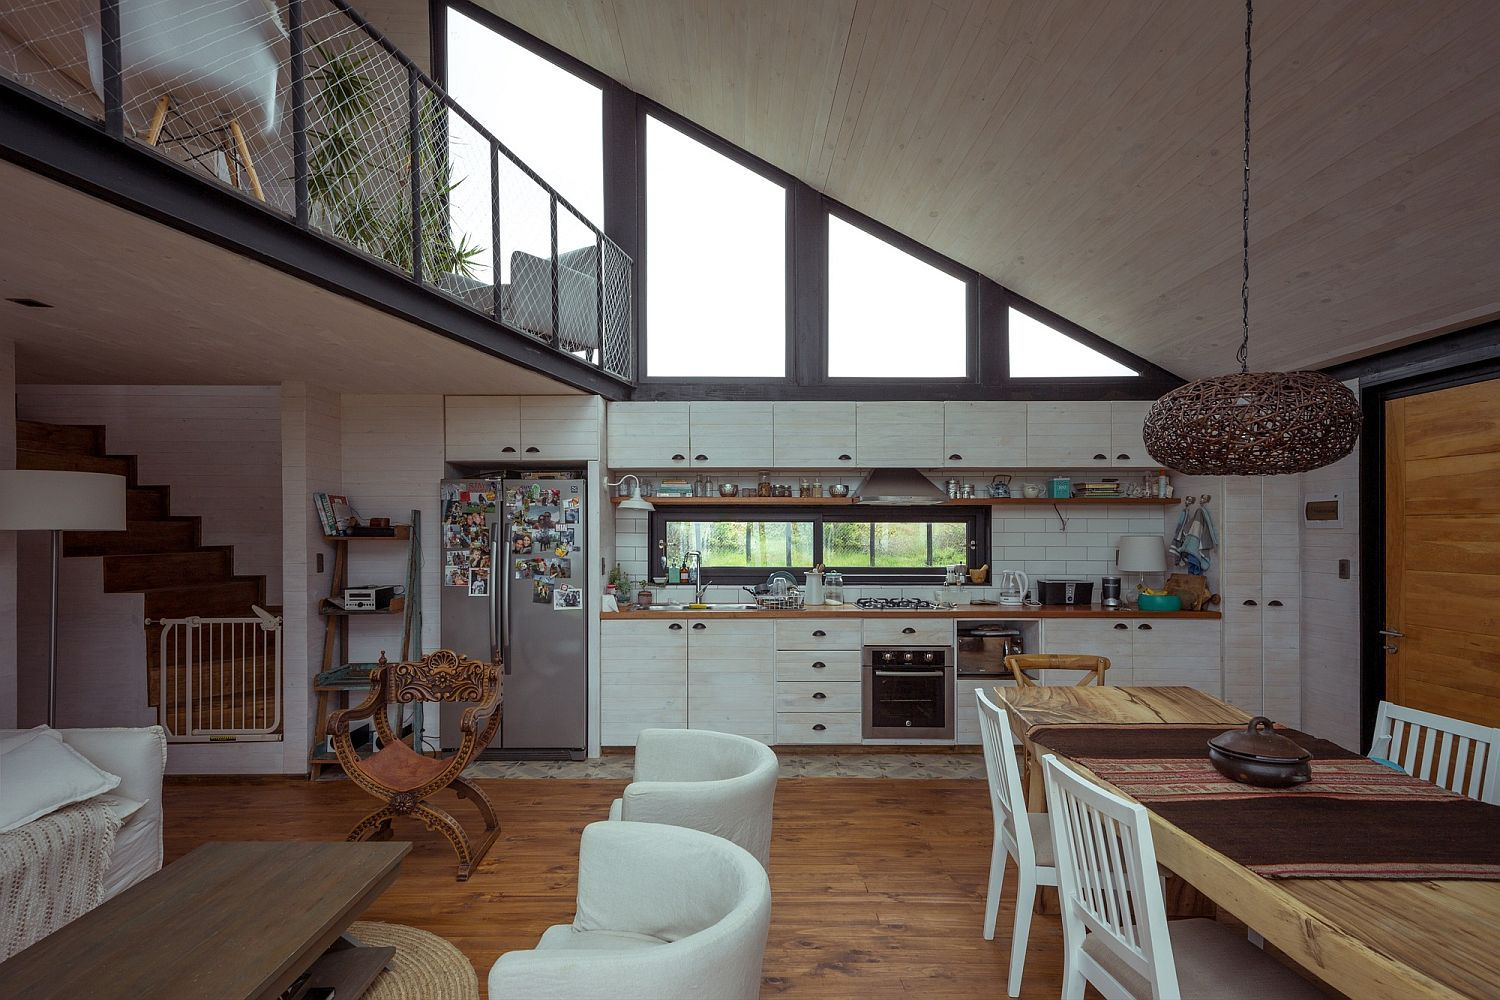 Sloped ceiling of the kitchen and dining area